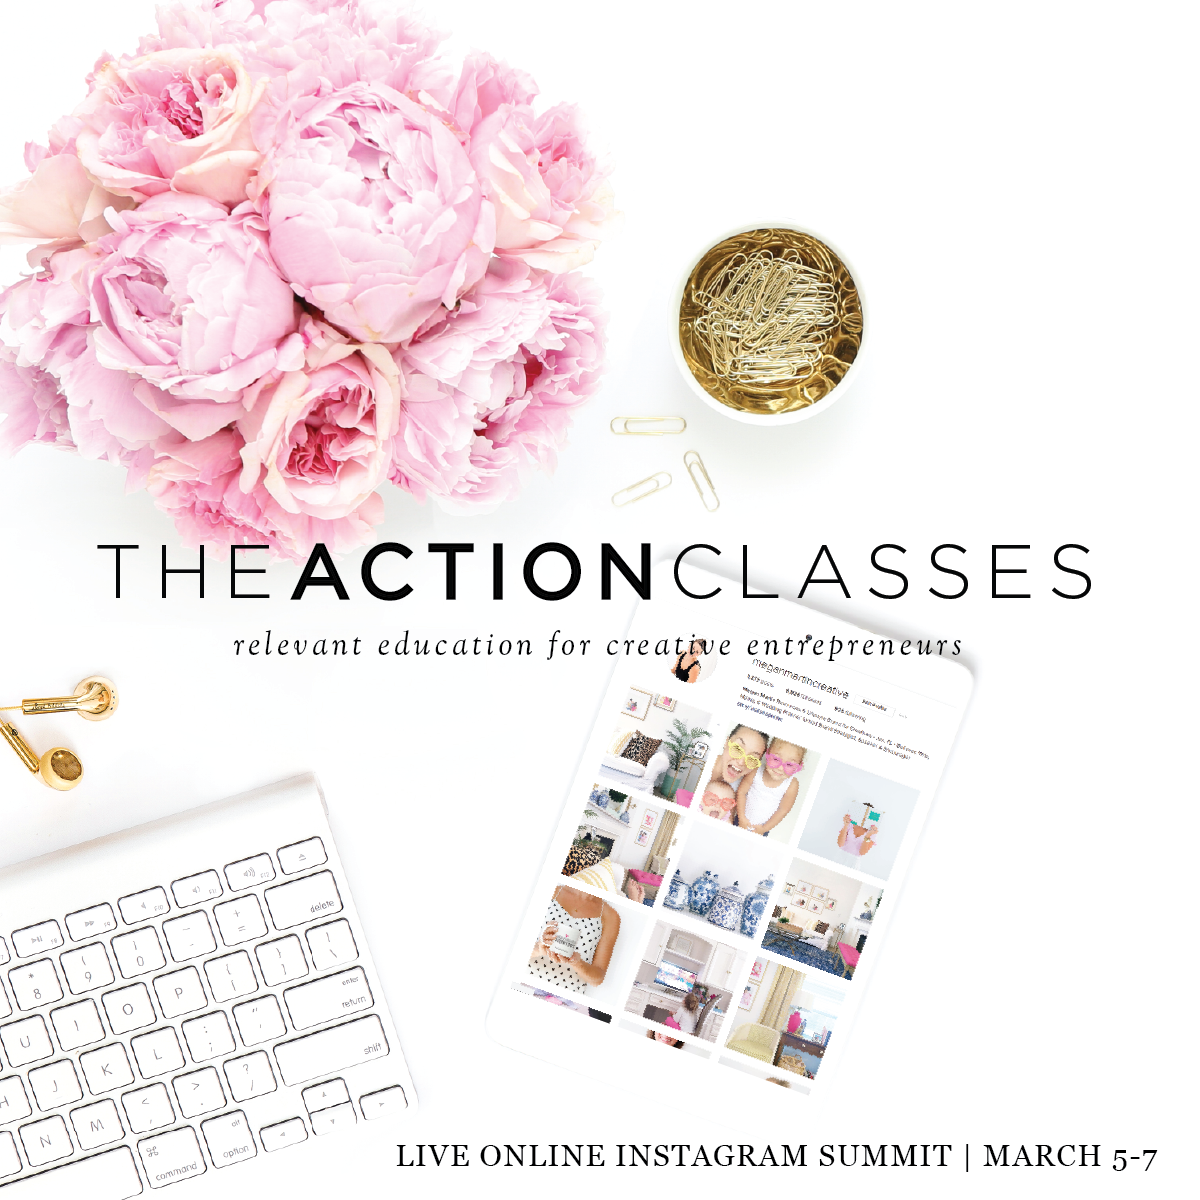 The Action Classes by Megan Martin | Live Instagram Summit